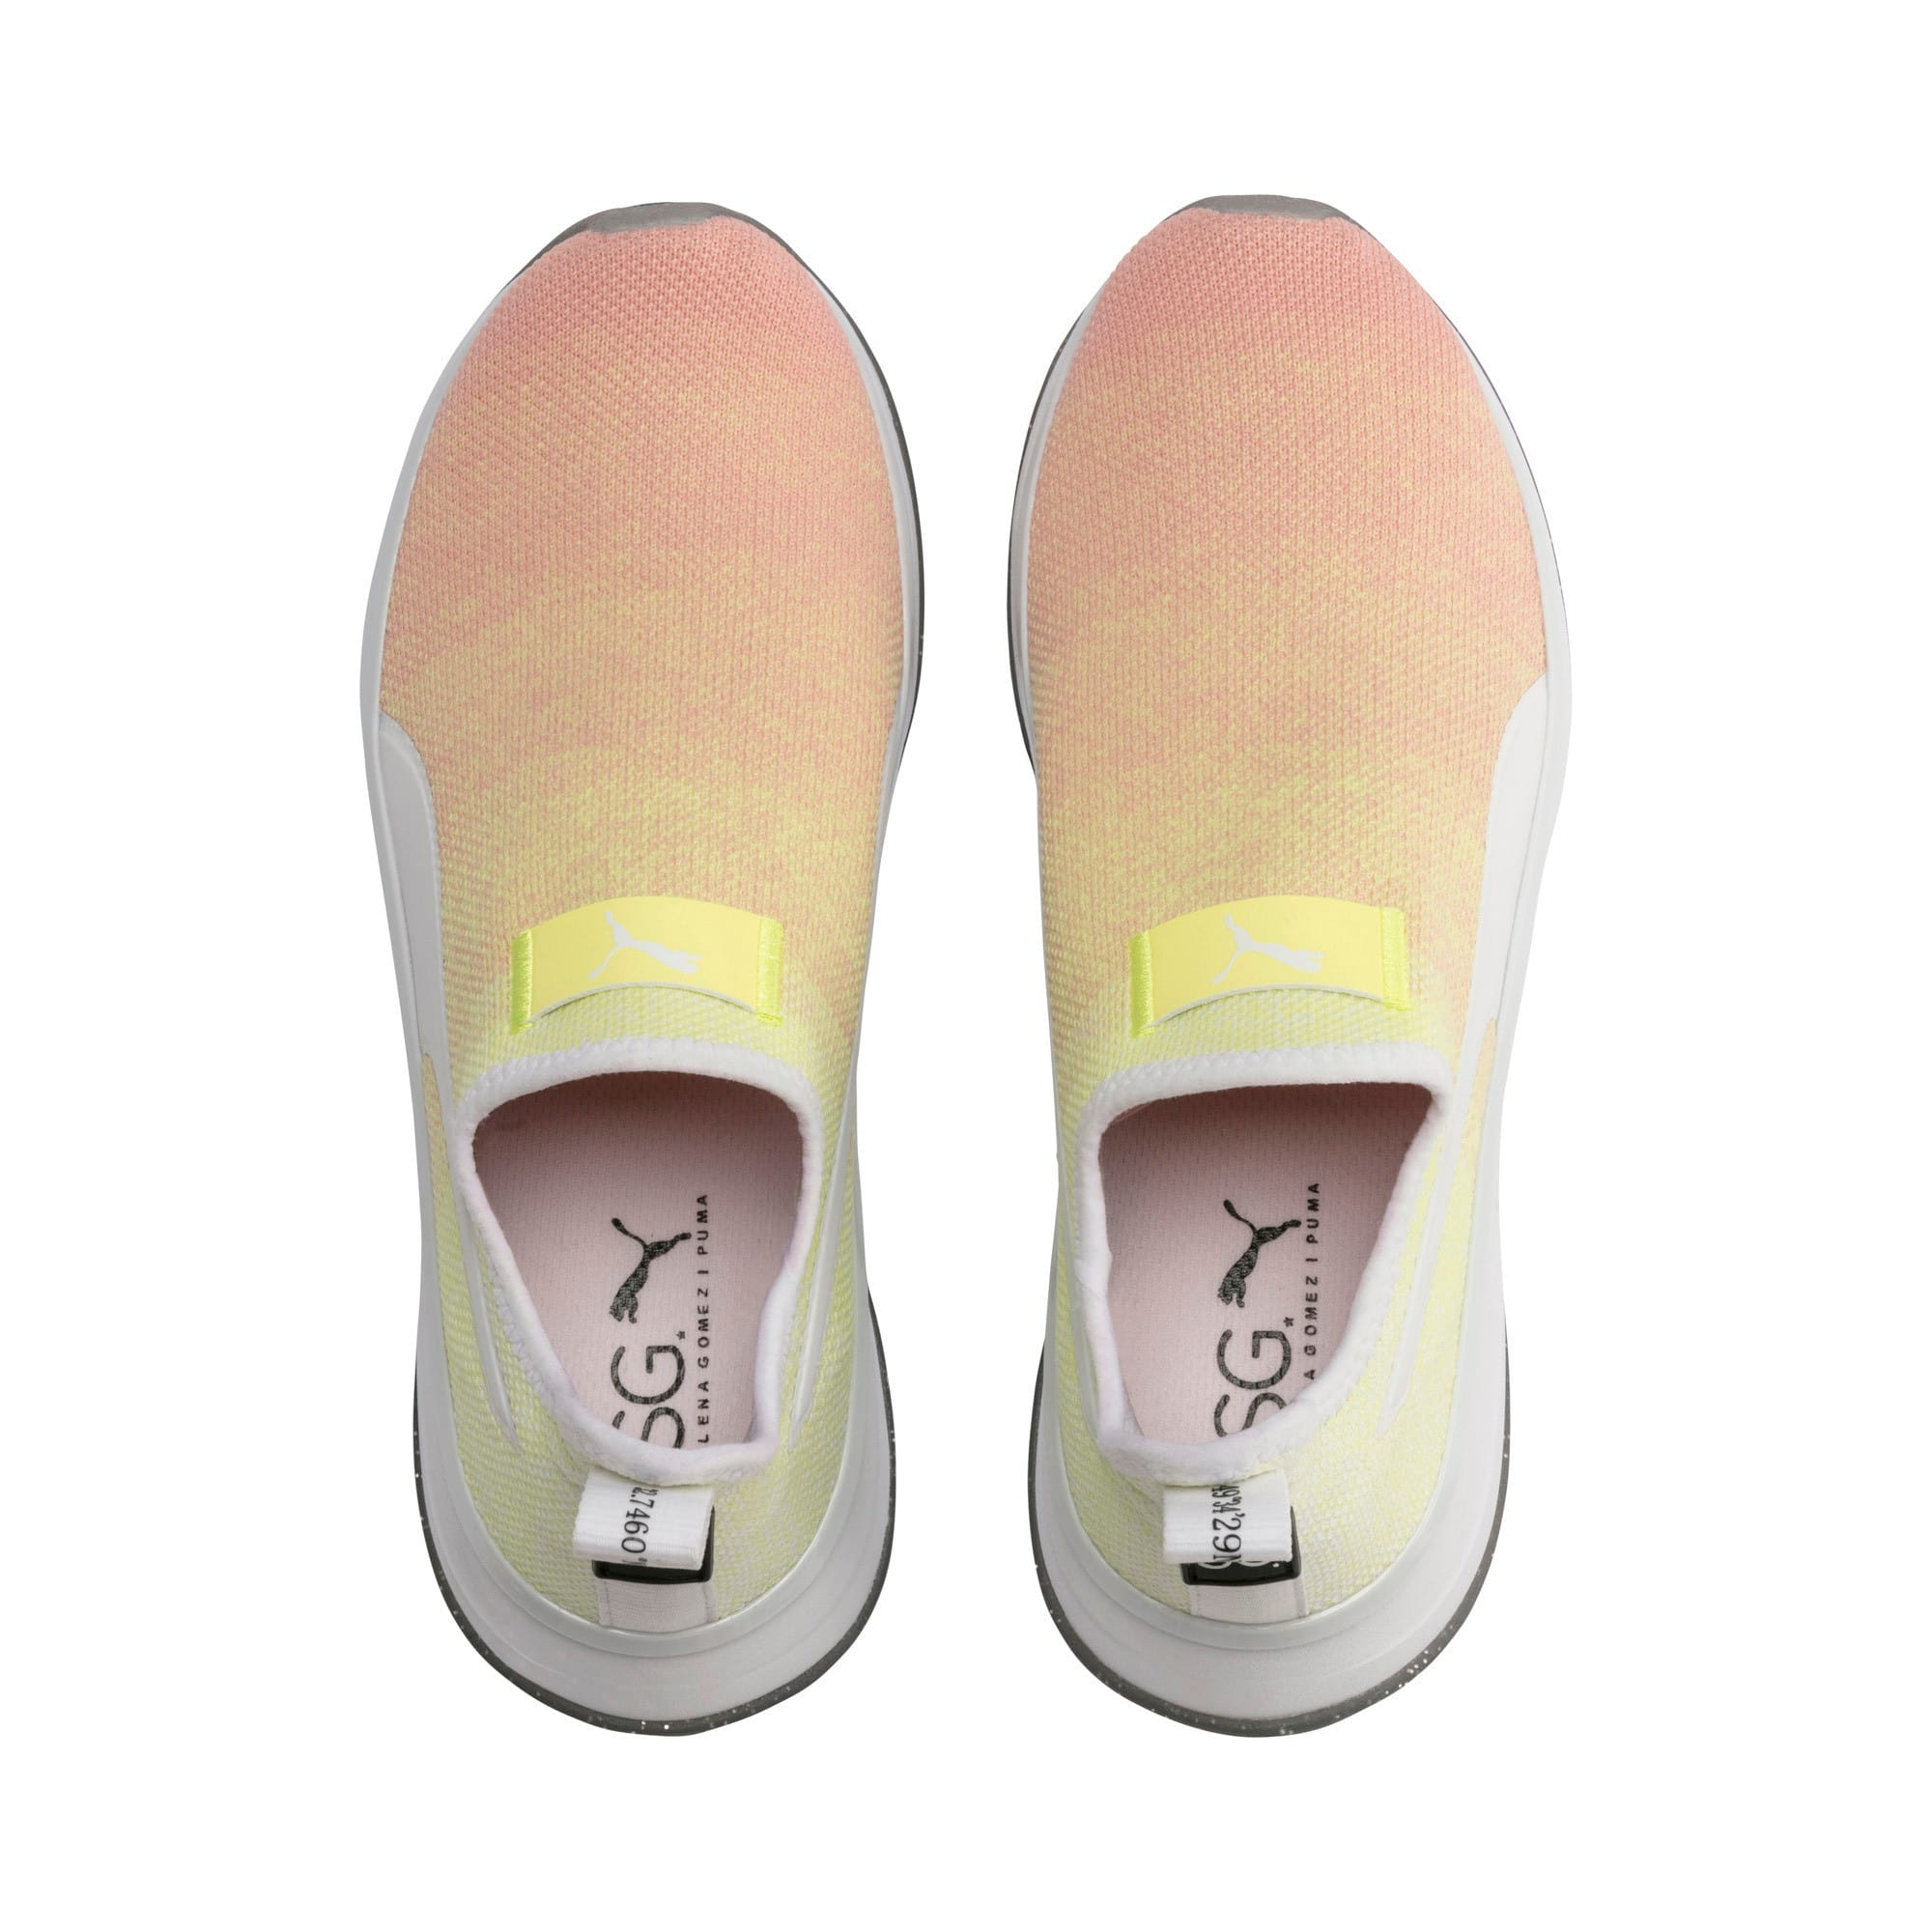 Thumbnail 7 of PUMA x SELENA GOMEZ Slip-On Gradient Women's Training Shoes, YELLOW-Peach Bud-White, medium